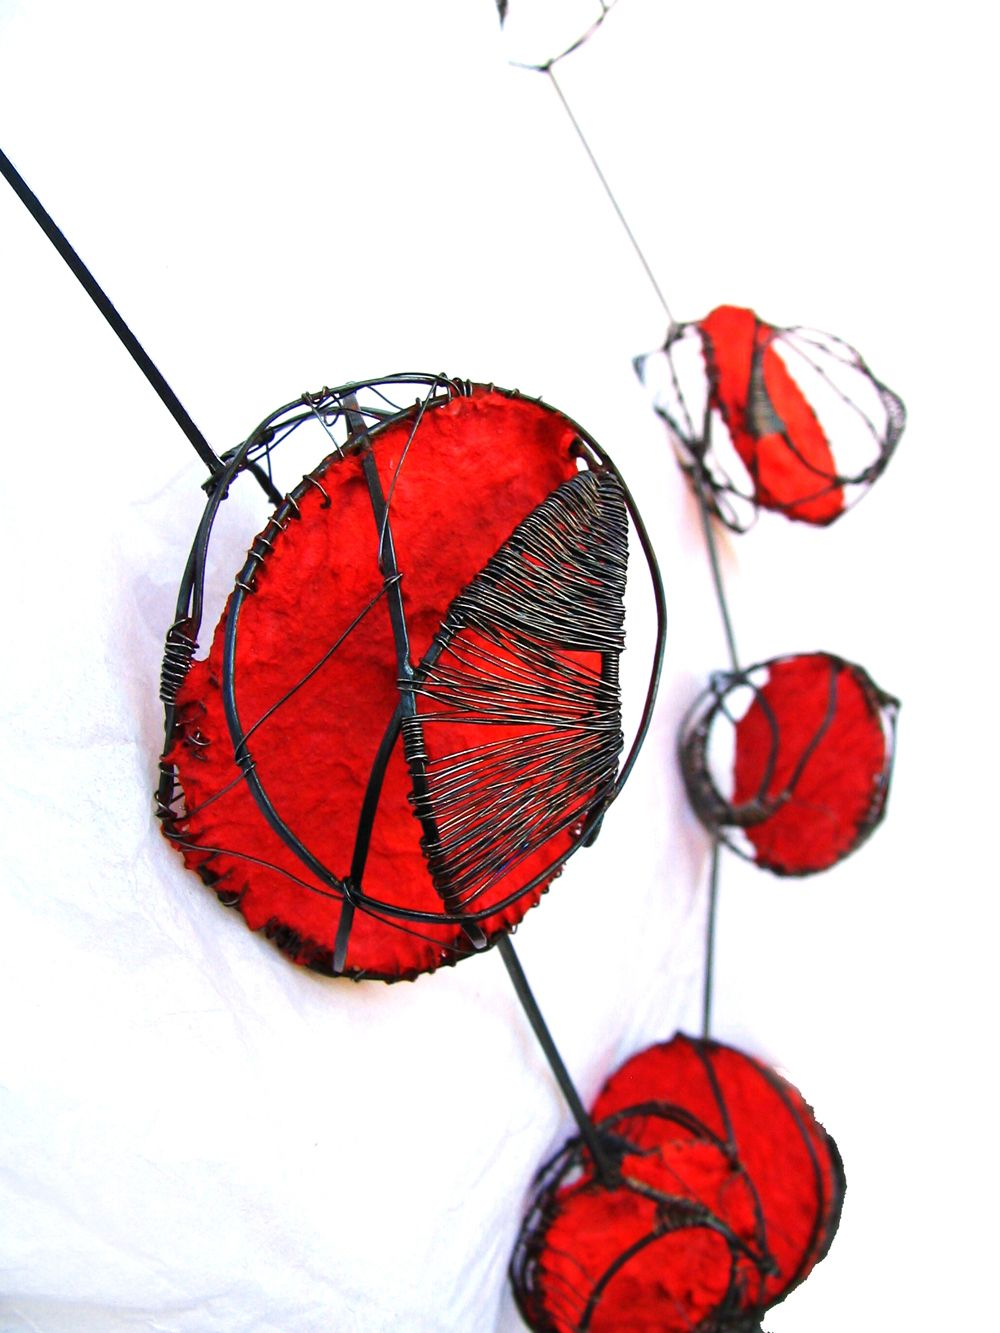 Lucía Nieves. Necklace: Ausencia Regreso, 2006. Iron, sterling silver, paper, pigments. Photo by: Lucía Nieves.